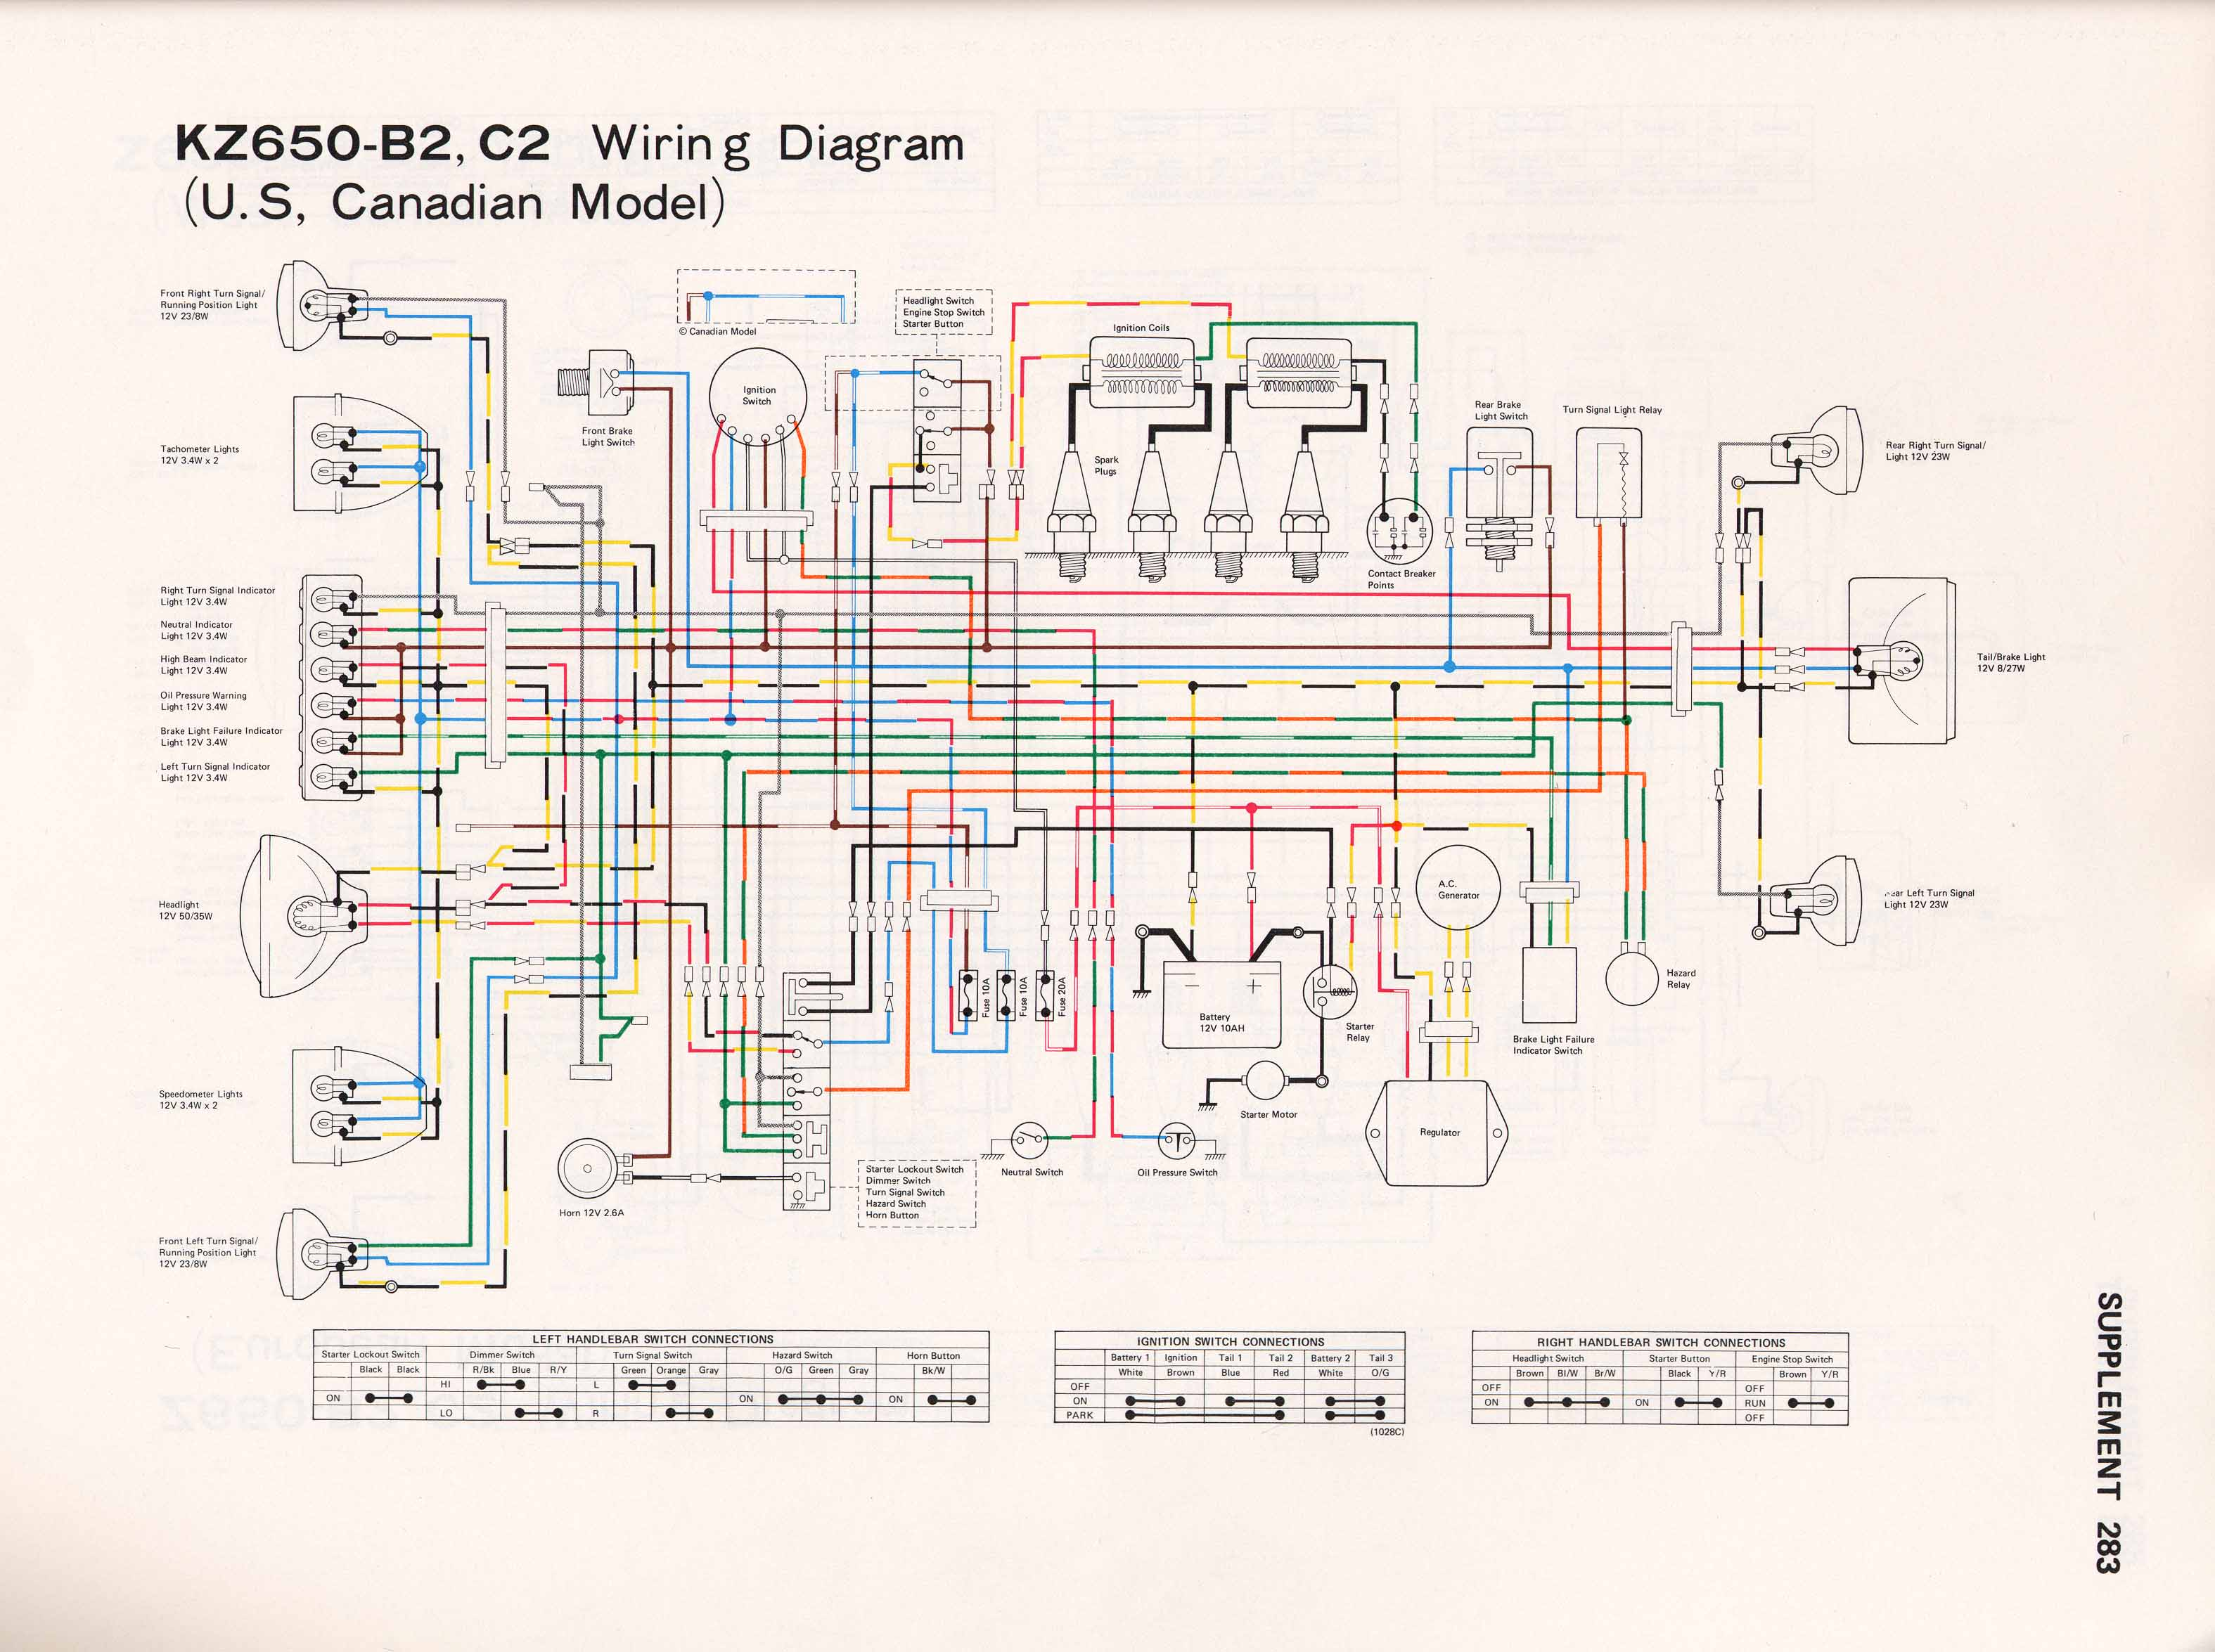 [DVZP_7254]   2838 Kawasaki 250 Ltd Wiring Diagram | Wiring Resources | Kawasaki 250 Ltd Wiring Diagram |  | Wiring Resources